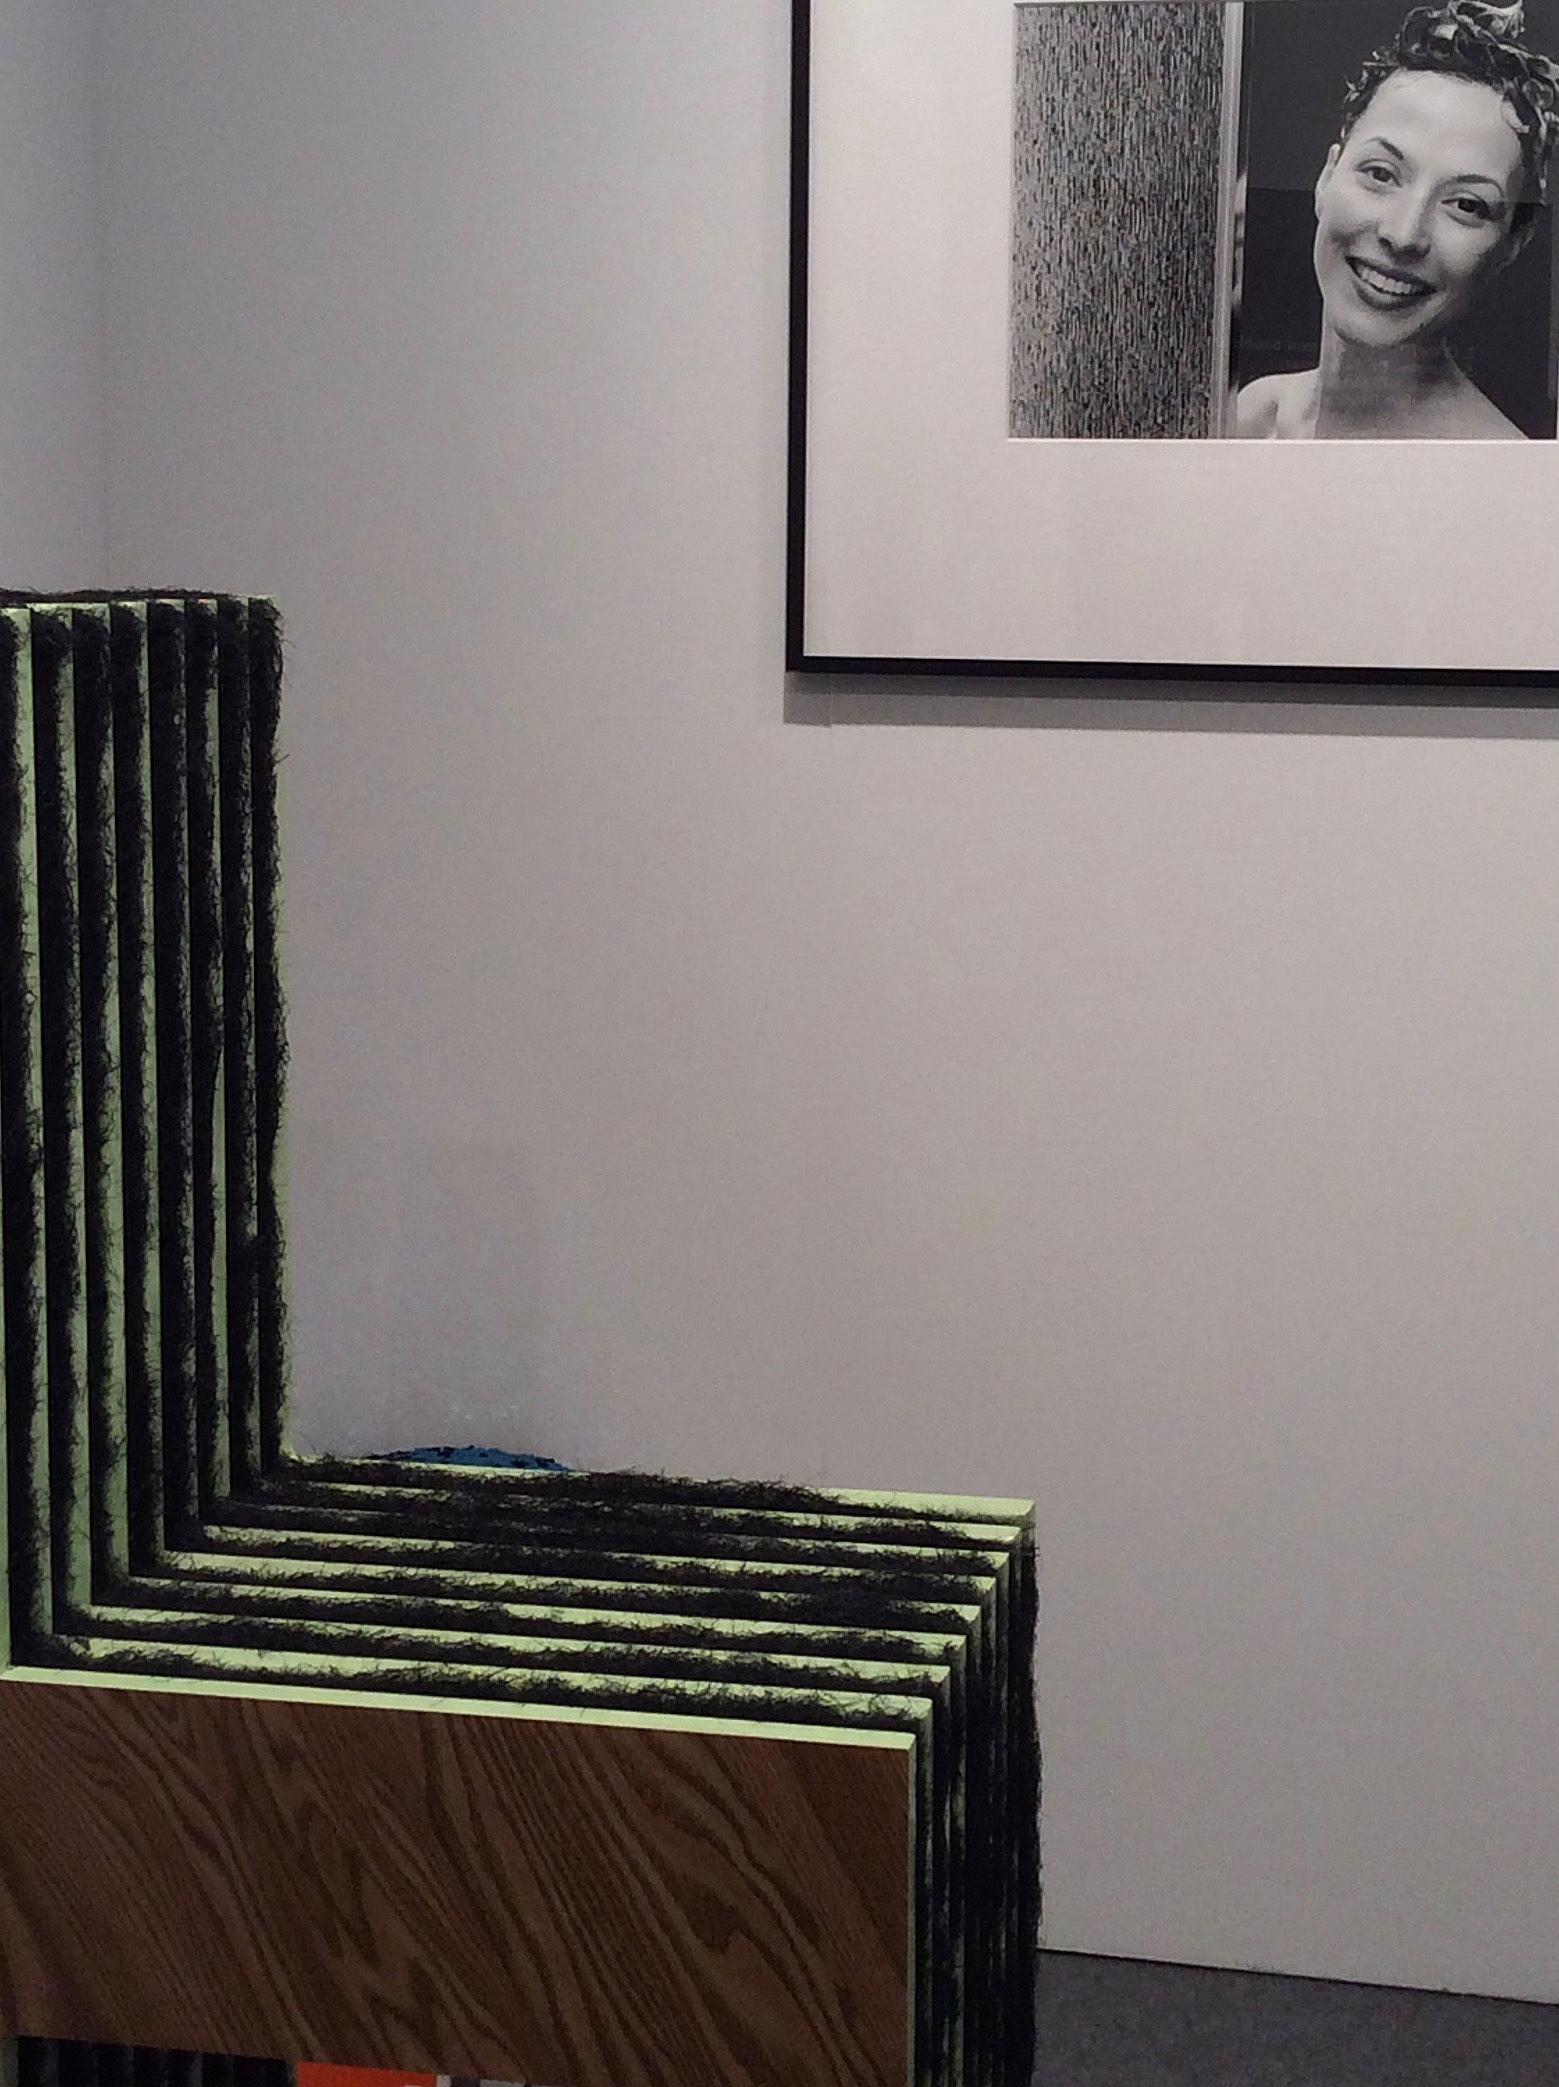 Acquired multiple photographs, including this Christopher Williams piece for client at Aipad   New York